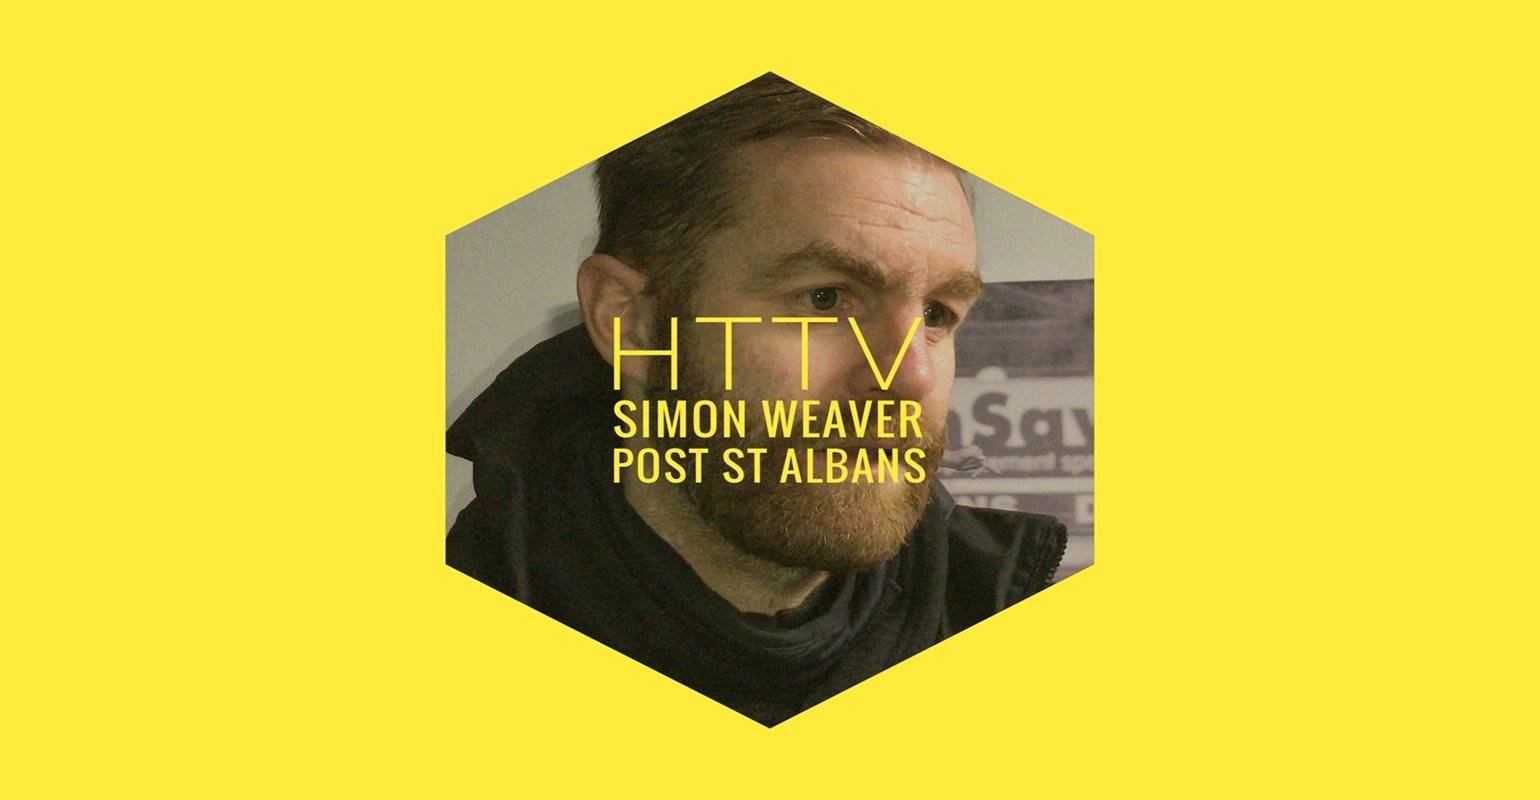 HTTV | Simon Weaver Post St Albans